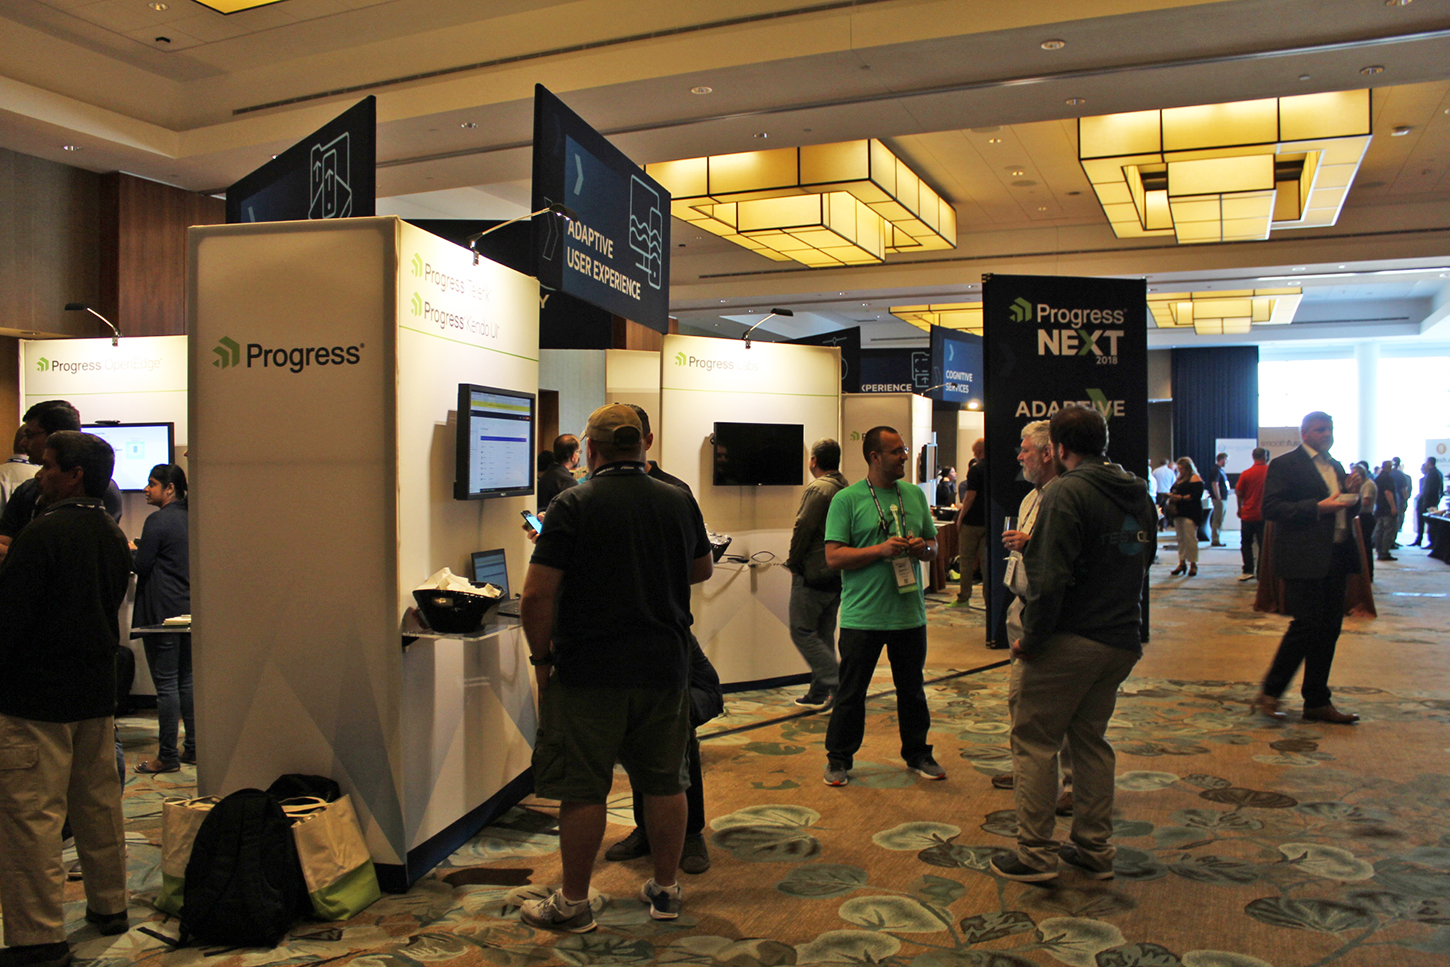 This 60' x 40' open concept custom exhibit combines branded fabric towers with LED lighting, wall-mounted monitors and shelving for laptops, and overhead signage to guide conference attendees through each interactive user experience.